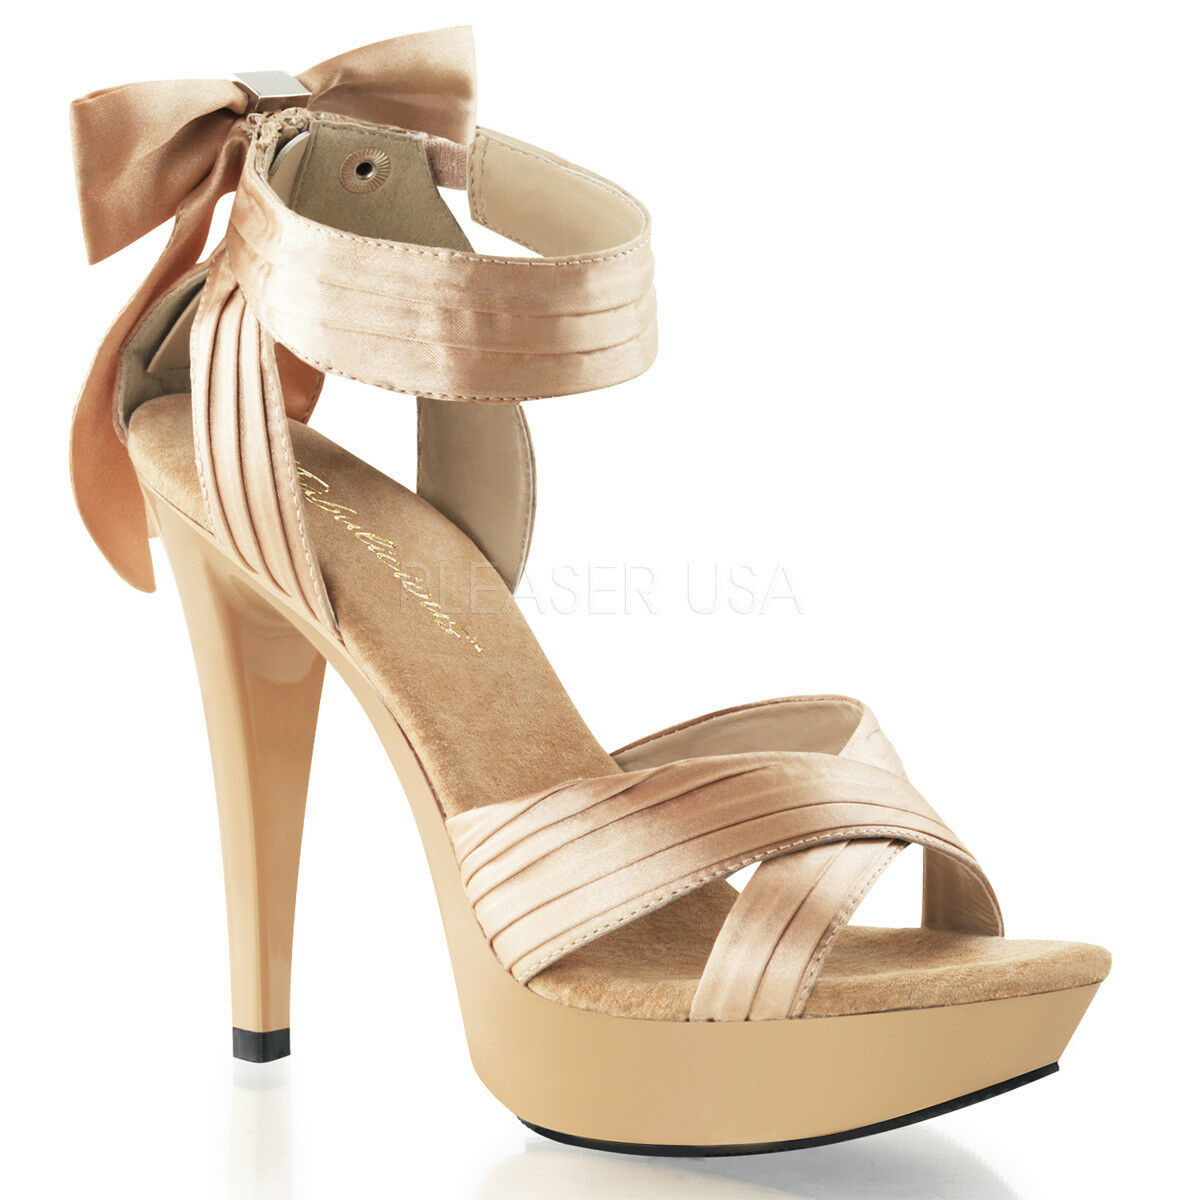 Nude Cream Satin Bridesmaid Heels Salsa Ballroom 8 Dance Schuhes Womans 7 8 Ballroom 9 10 11 48ea88